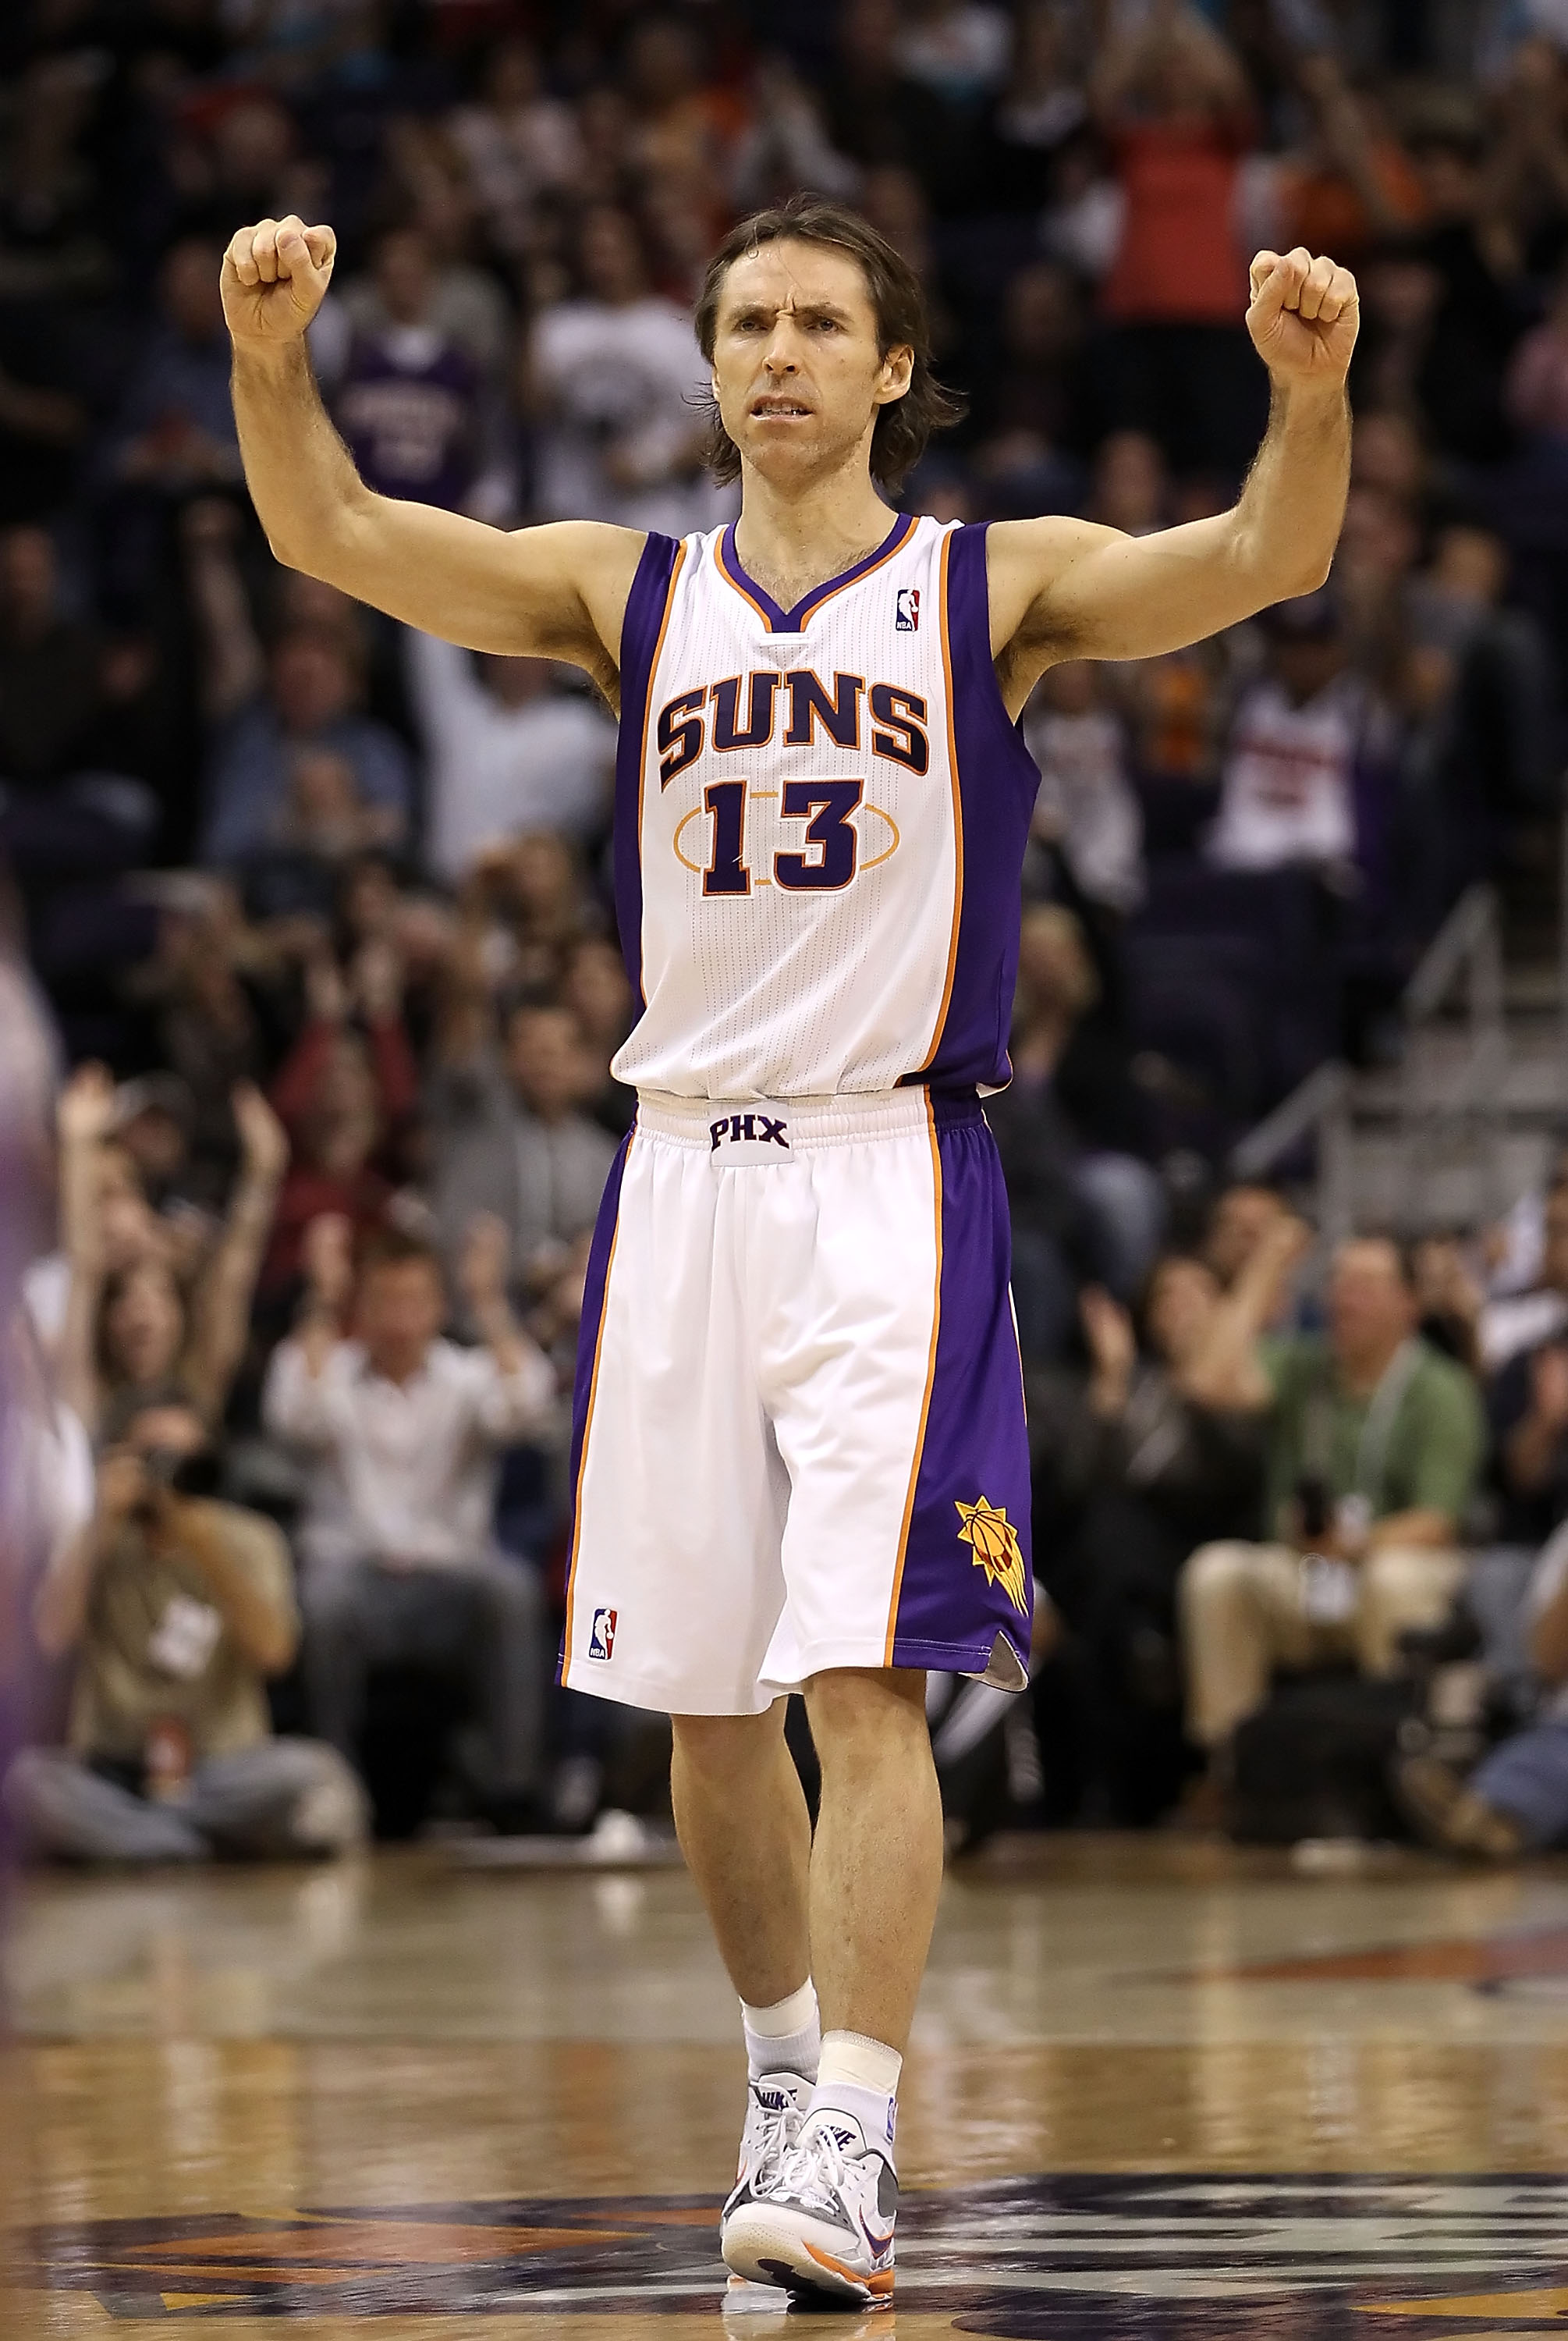 PHOENIX - DECEMBER 03:  Steve Nash #13 of the Phoenix Suns reacts after scoring against the Indiana Pacers during the NBA game at US Airways Center on December 3, 2010 in Phoenix, Arizona.  The Suns defeated the Pacers 105-97.  NOTE TO USER: User expressl